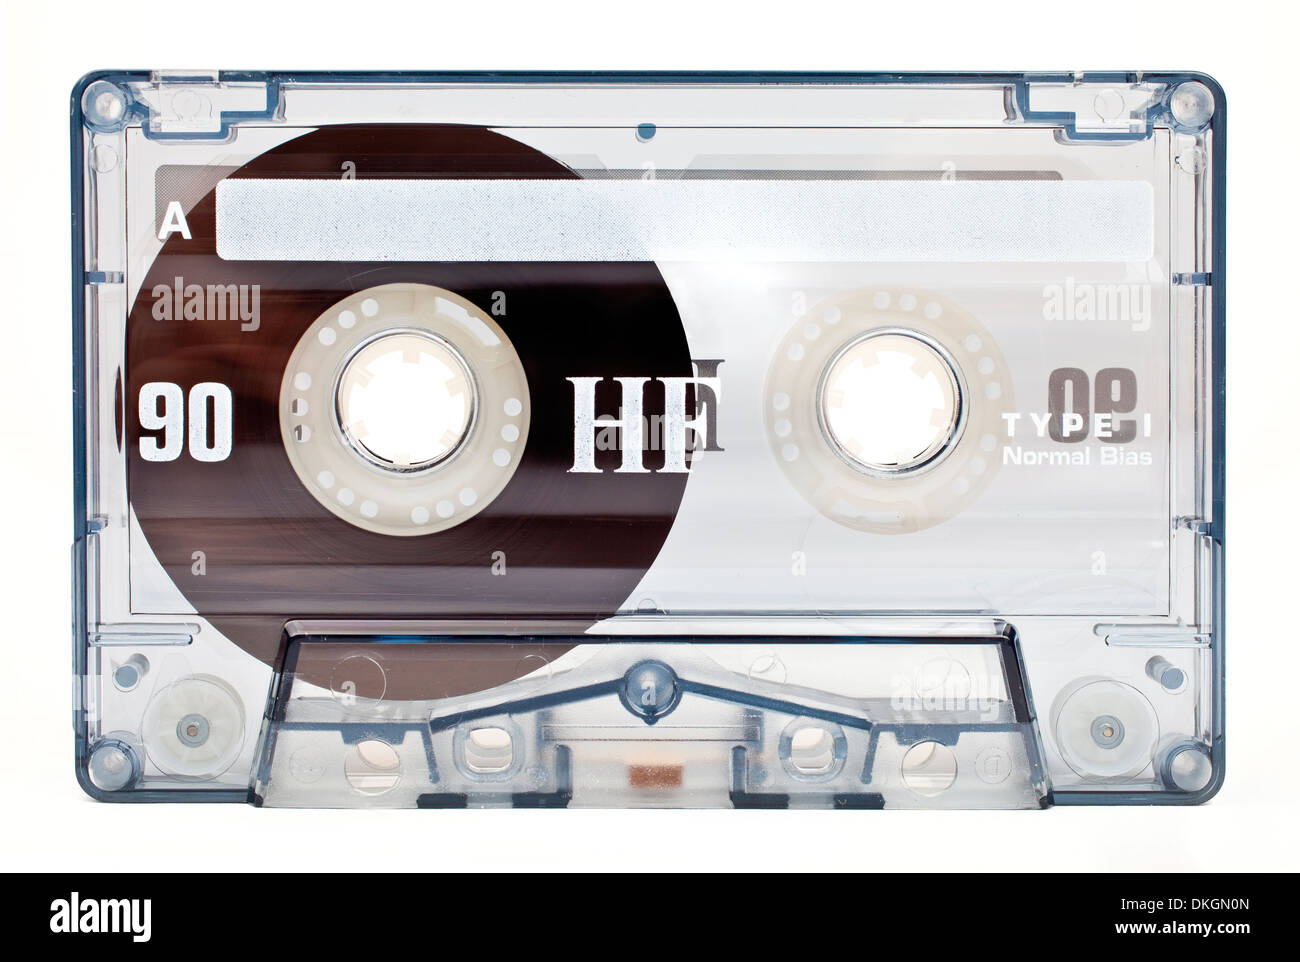 An old style Audio Tape on a white background. - Stock Image